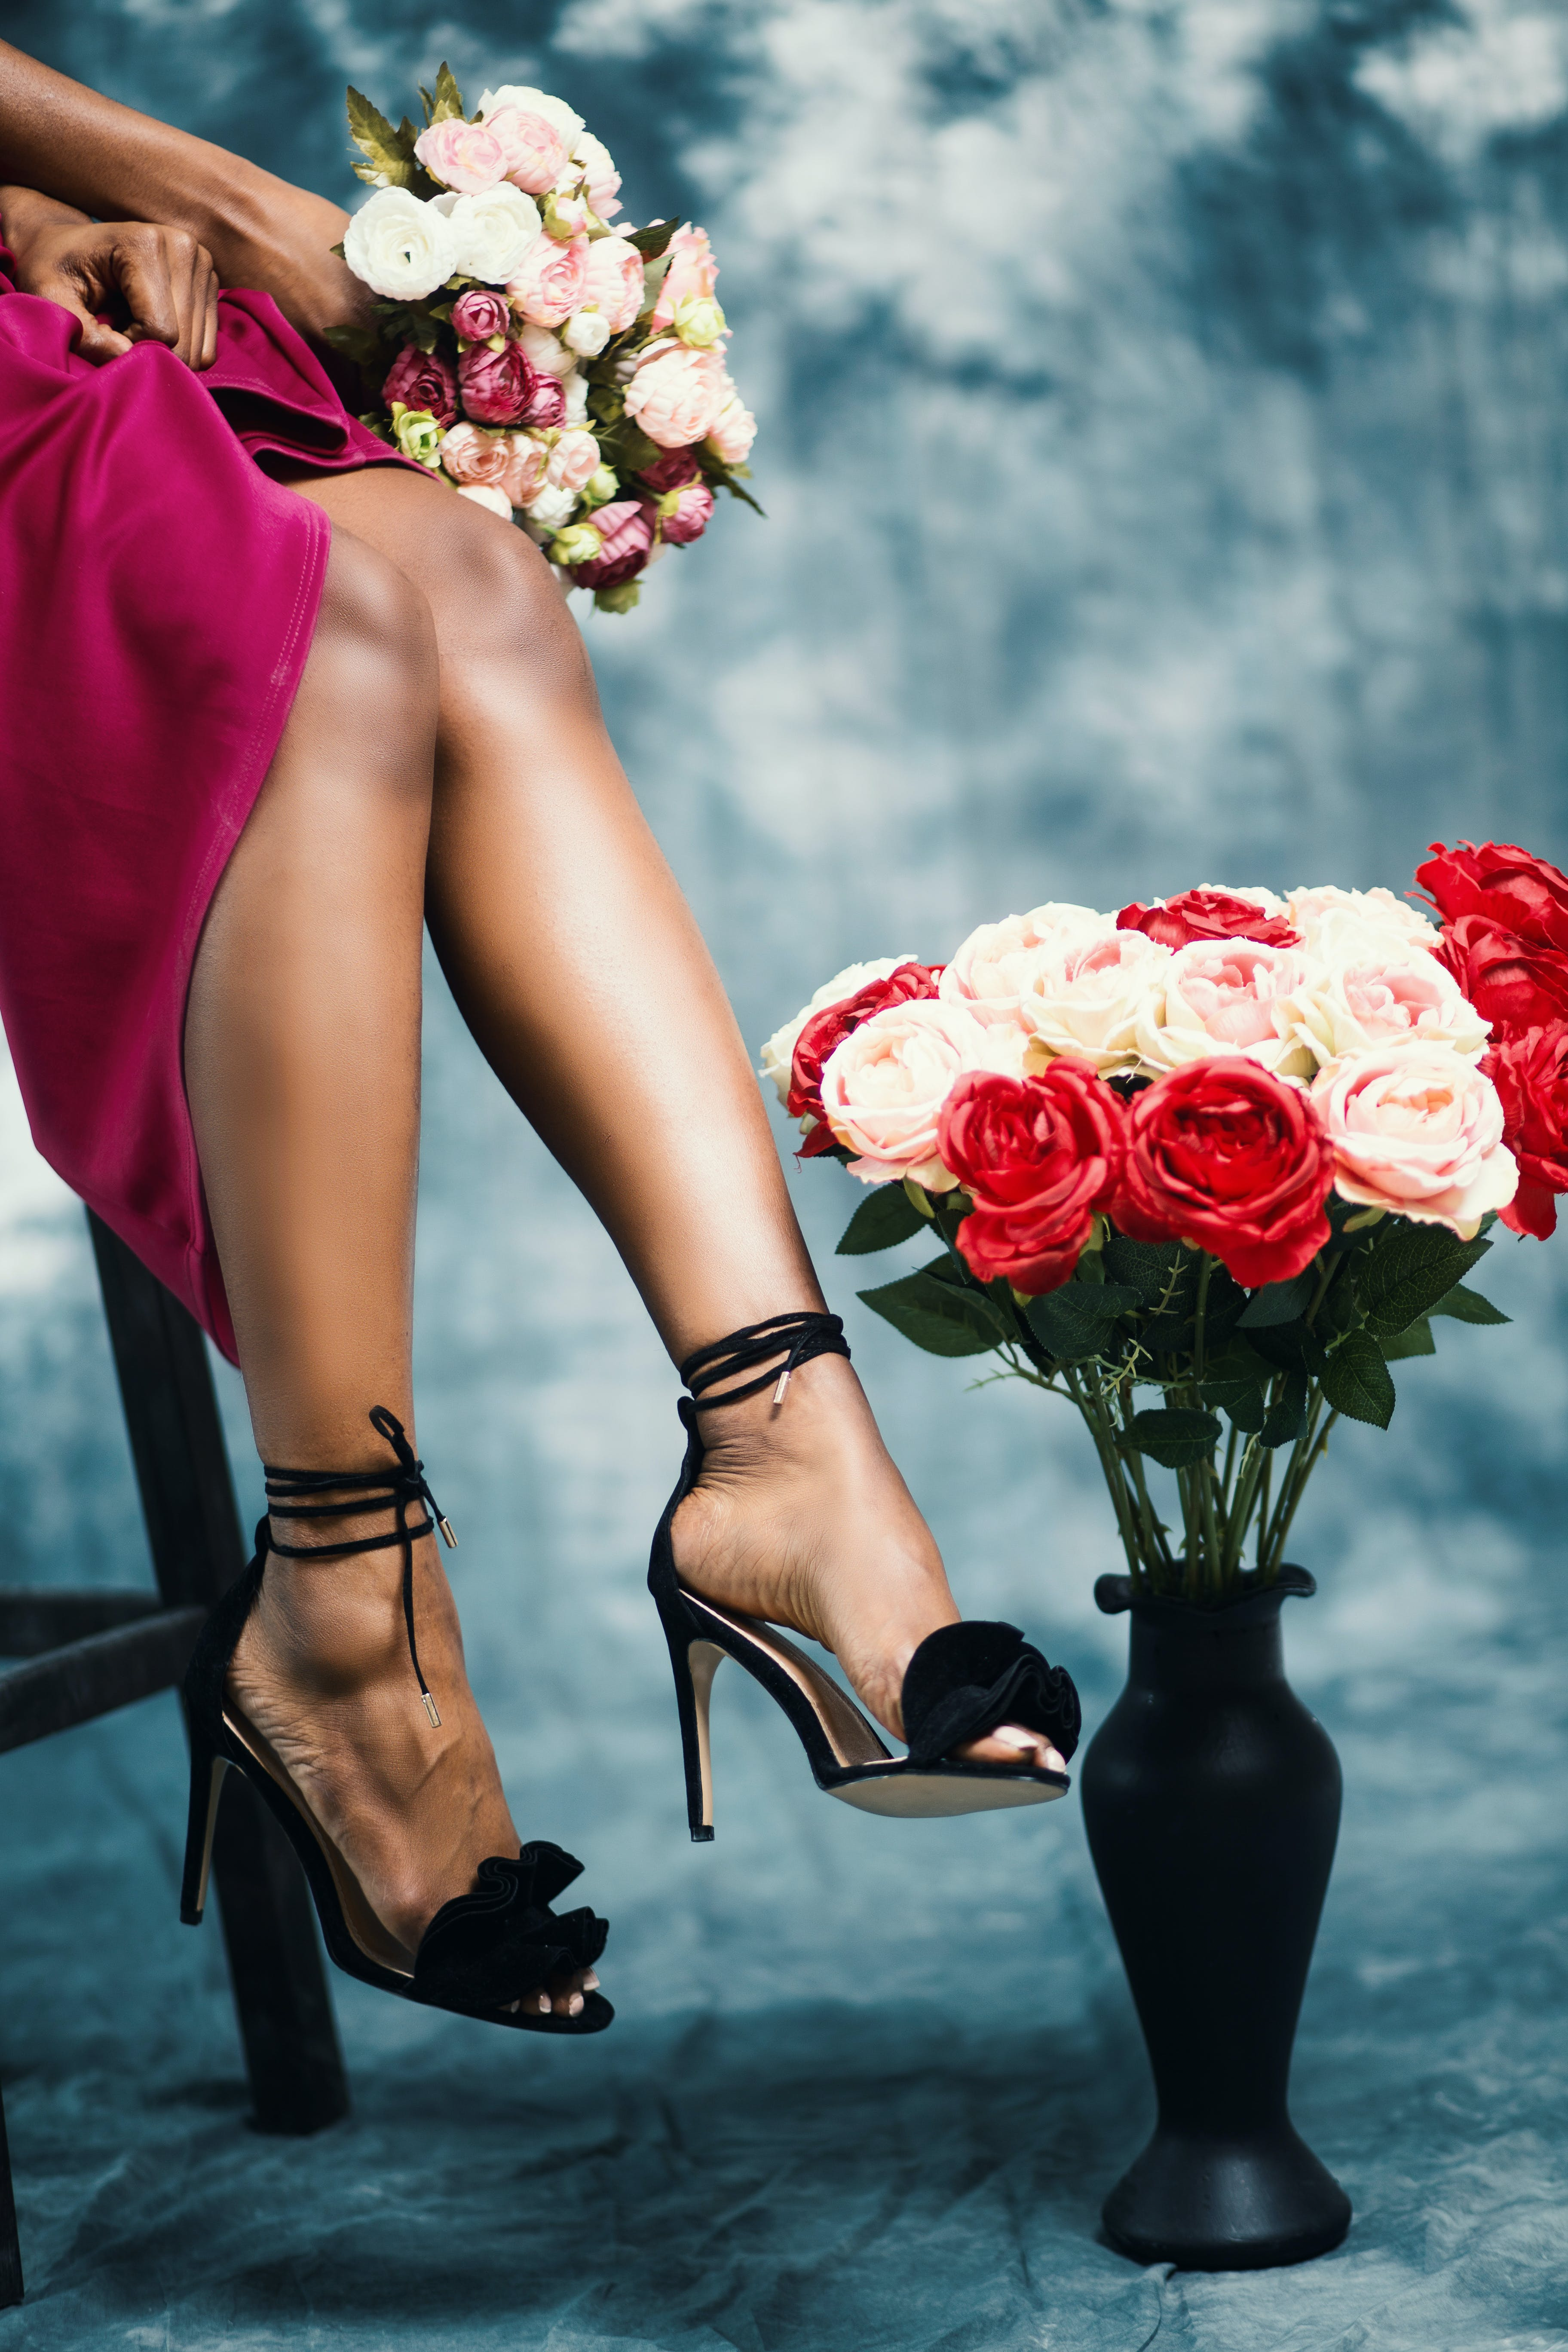 Red and Pink Rose Flower Bouquet at Woman's Hand